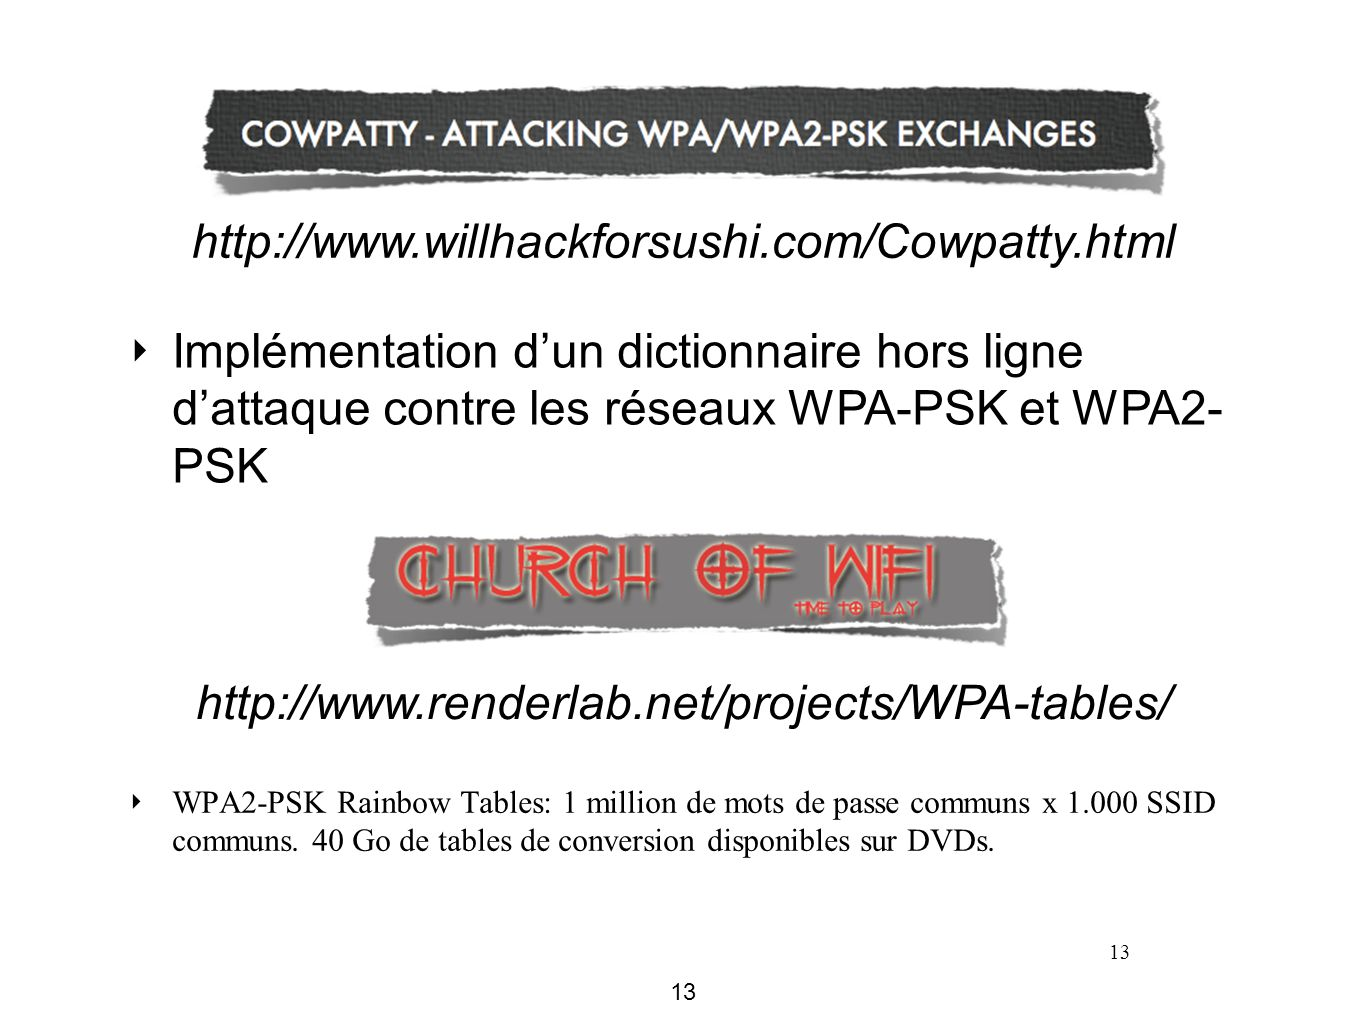 13 ‣ WPA2-PSK Rainbow Tables: 1 million de mots de passe communs x 1.000 SSID communs. 40 Go de tables de conversion disponibles sur DVDs. http://www.